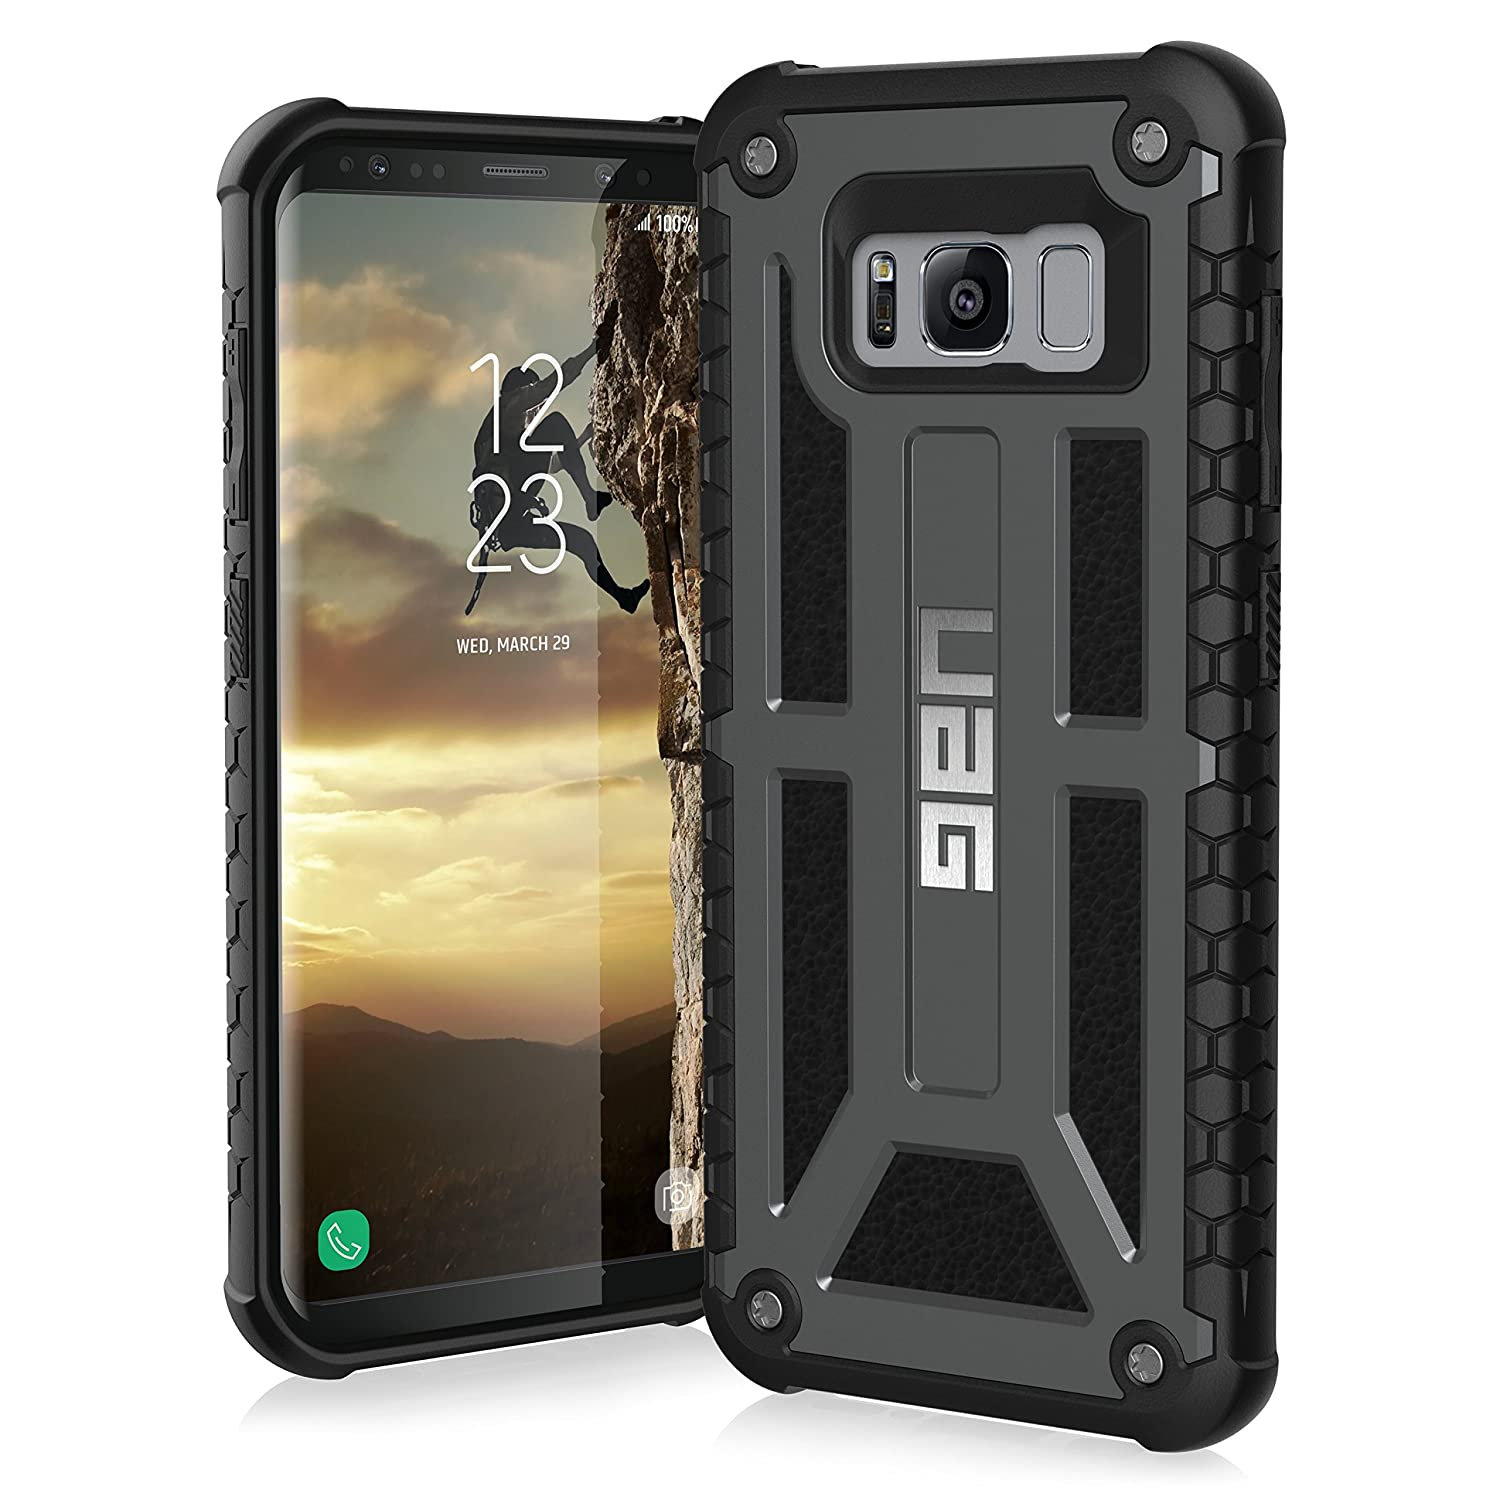 Galaxy s6 cases shop samsung cases online uag urban armor gear - Urban Armor Gear Monarch Feather Light Rugged Military Amazon Co Uk Electronics